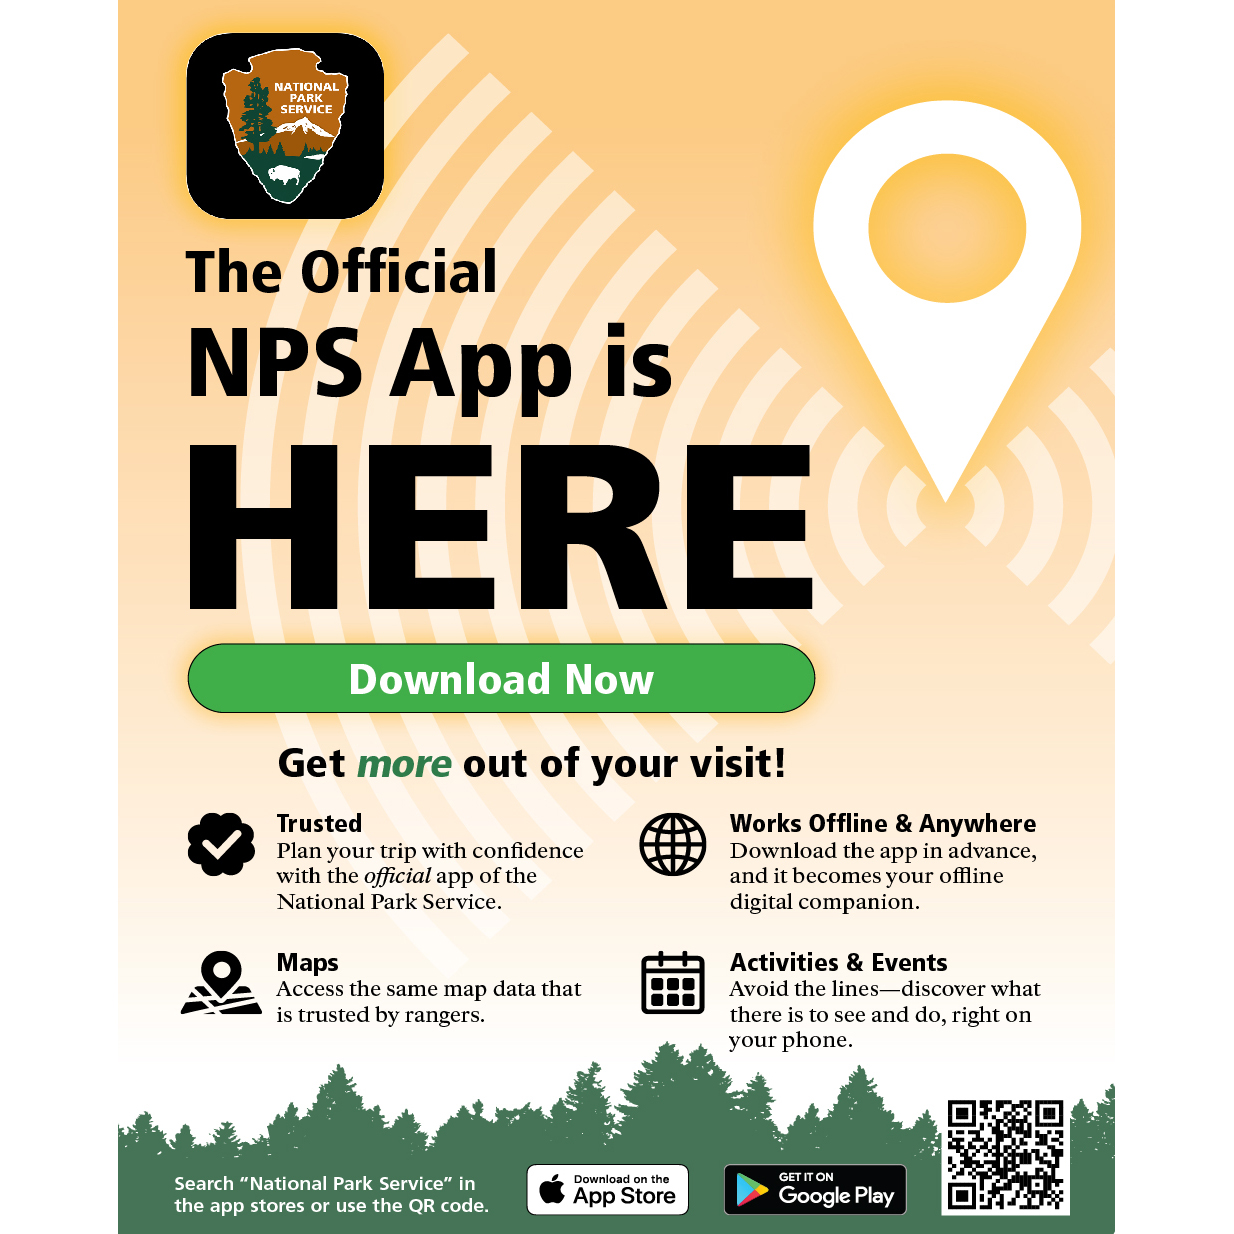 An orange poster for the new NPS mobile App, showing the NPS Arrowhead icon in the top left corner.